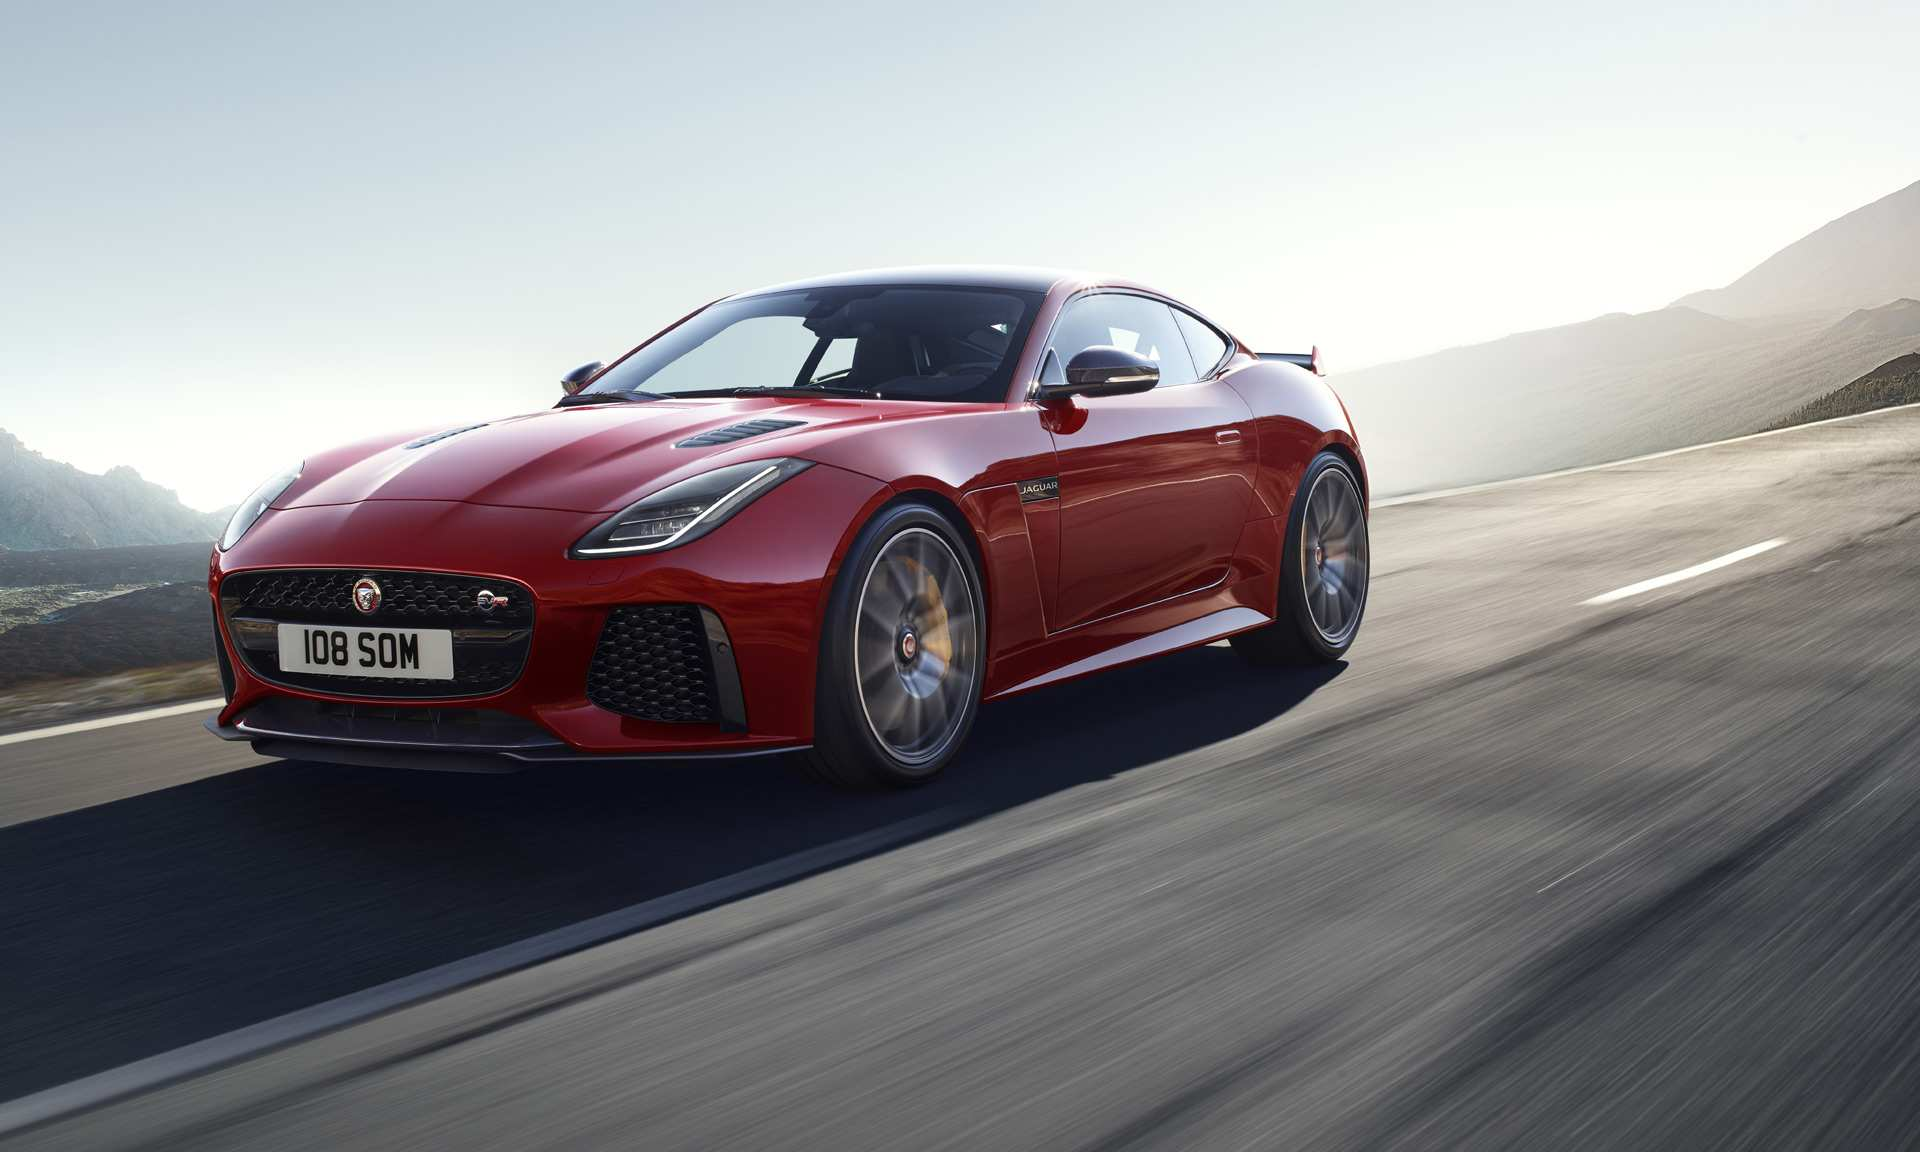 38 New 2019 Jaguar F Type Overview